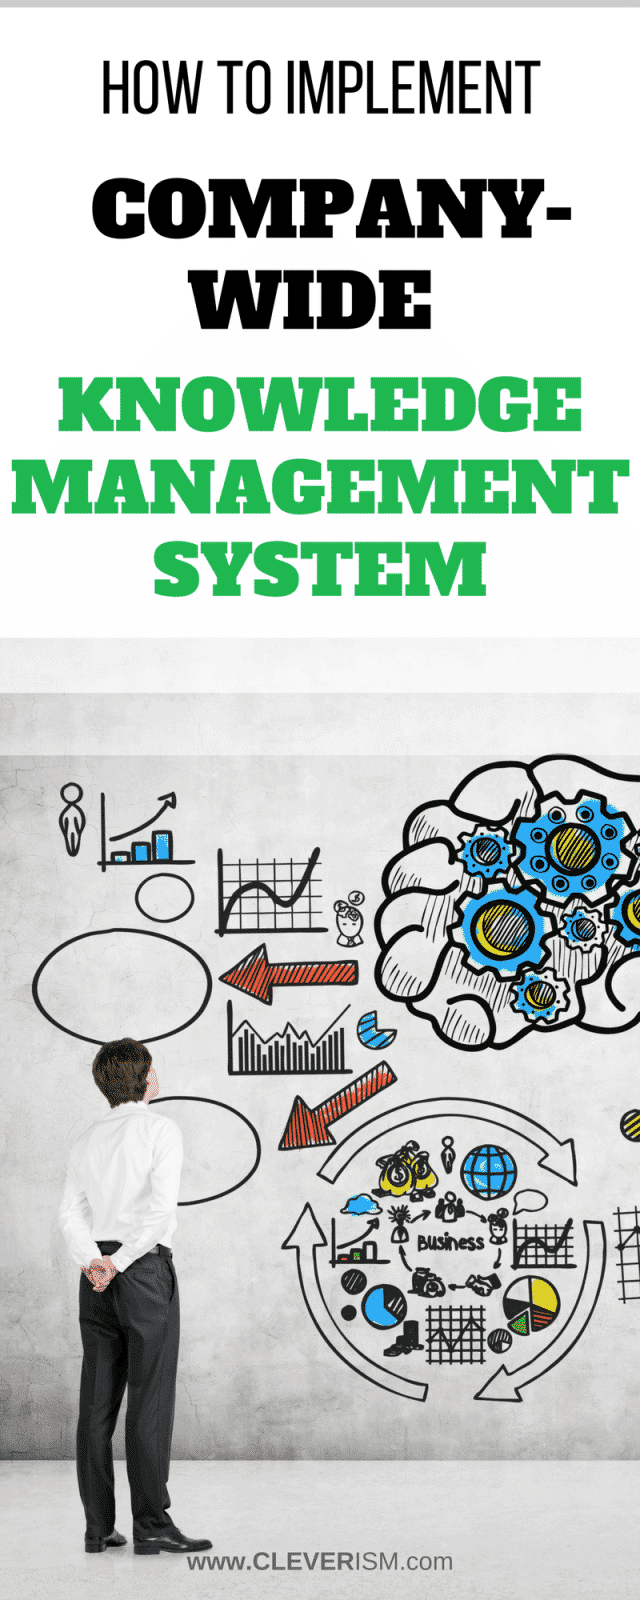 How To Implement Knowledge Management System